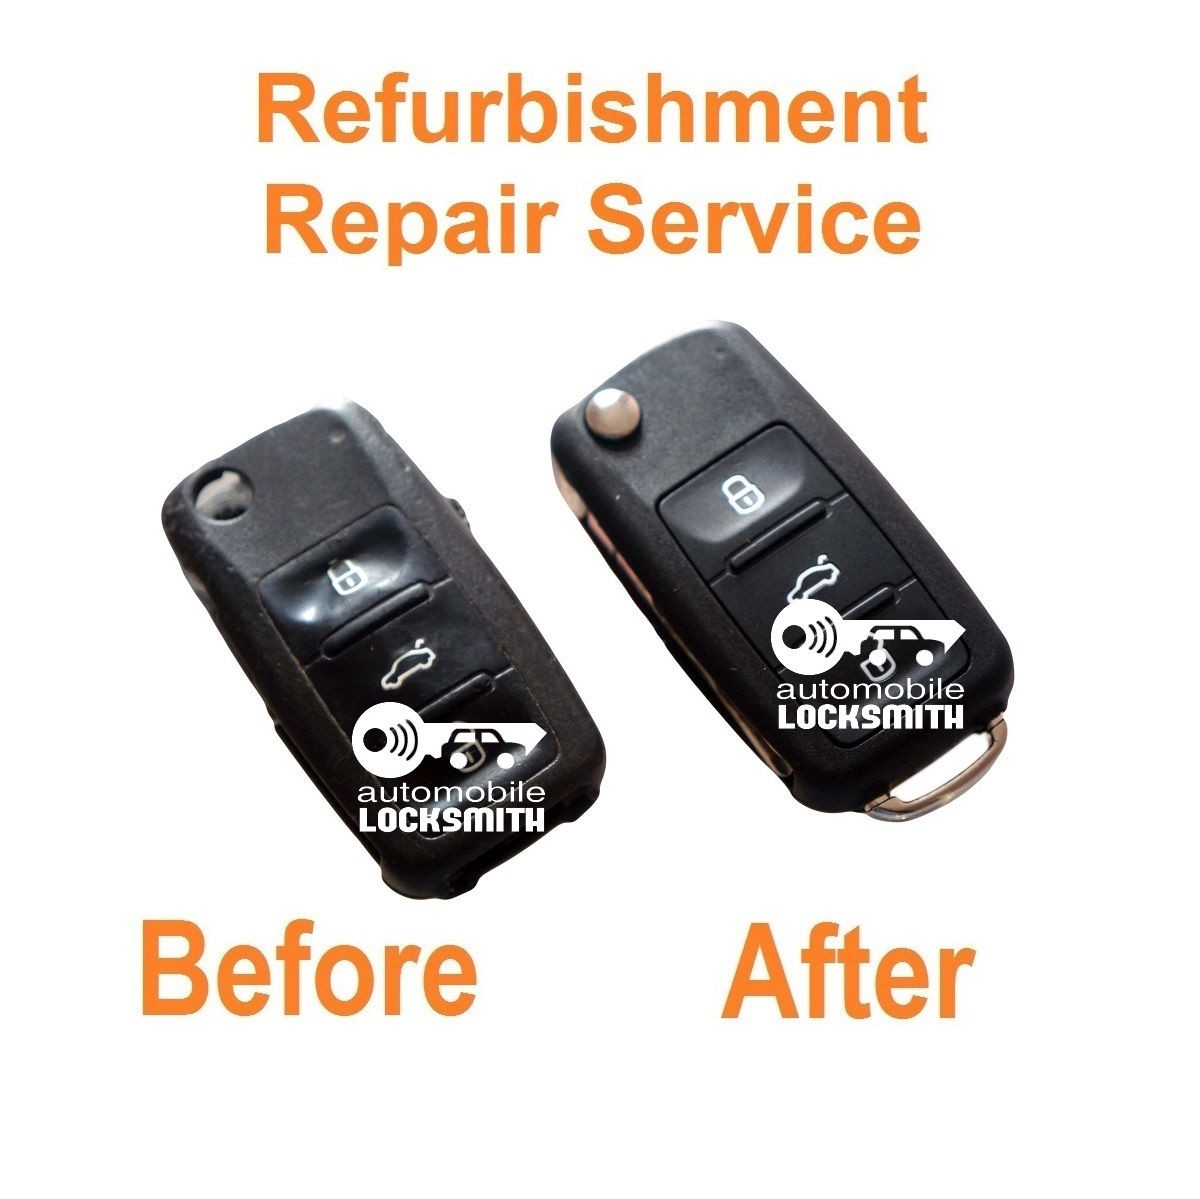 Repair Service for Seat Altea Ibiza Toledo Leon Alhambra 3 button remote key